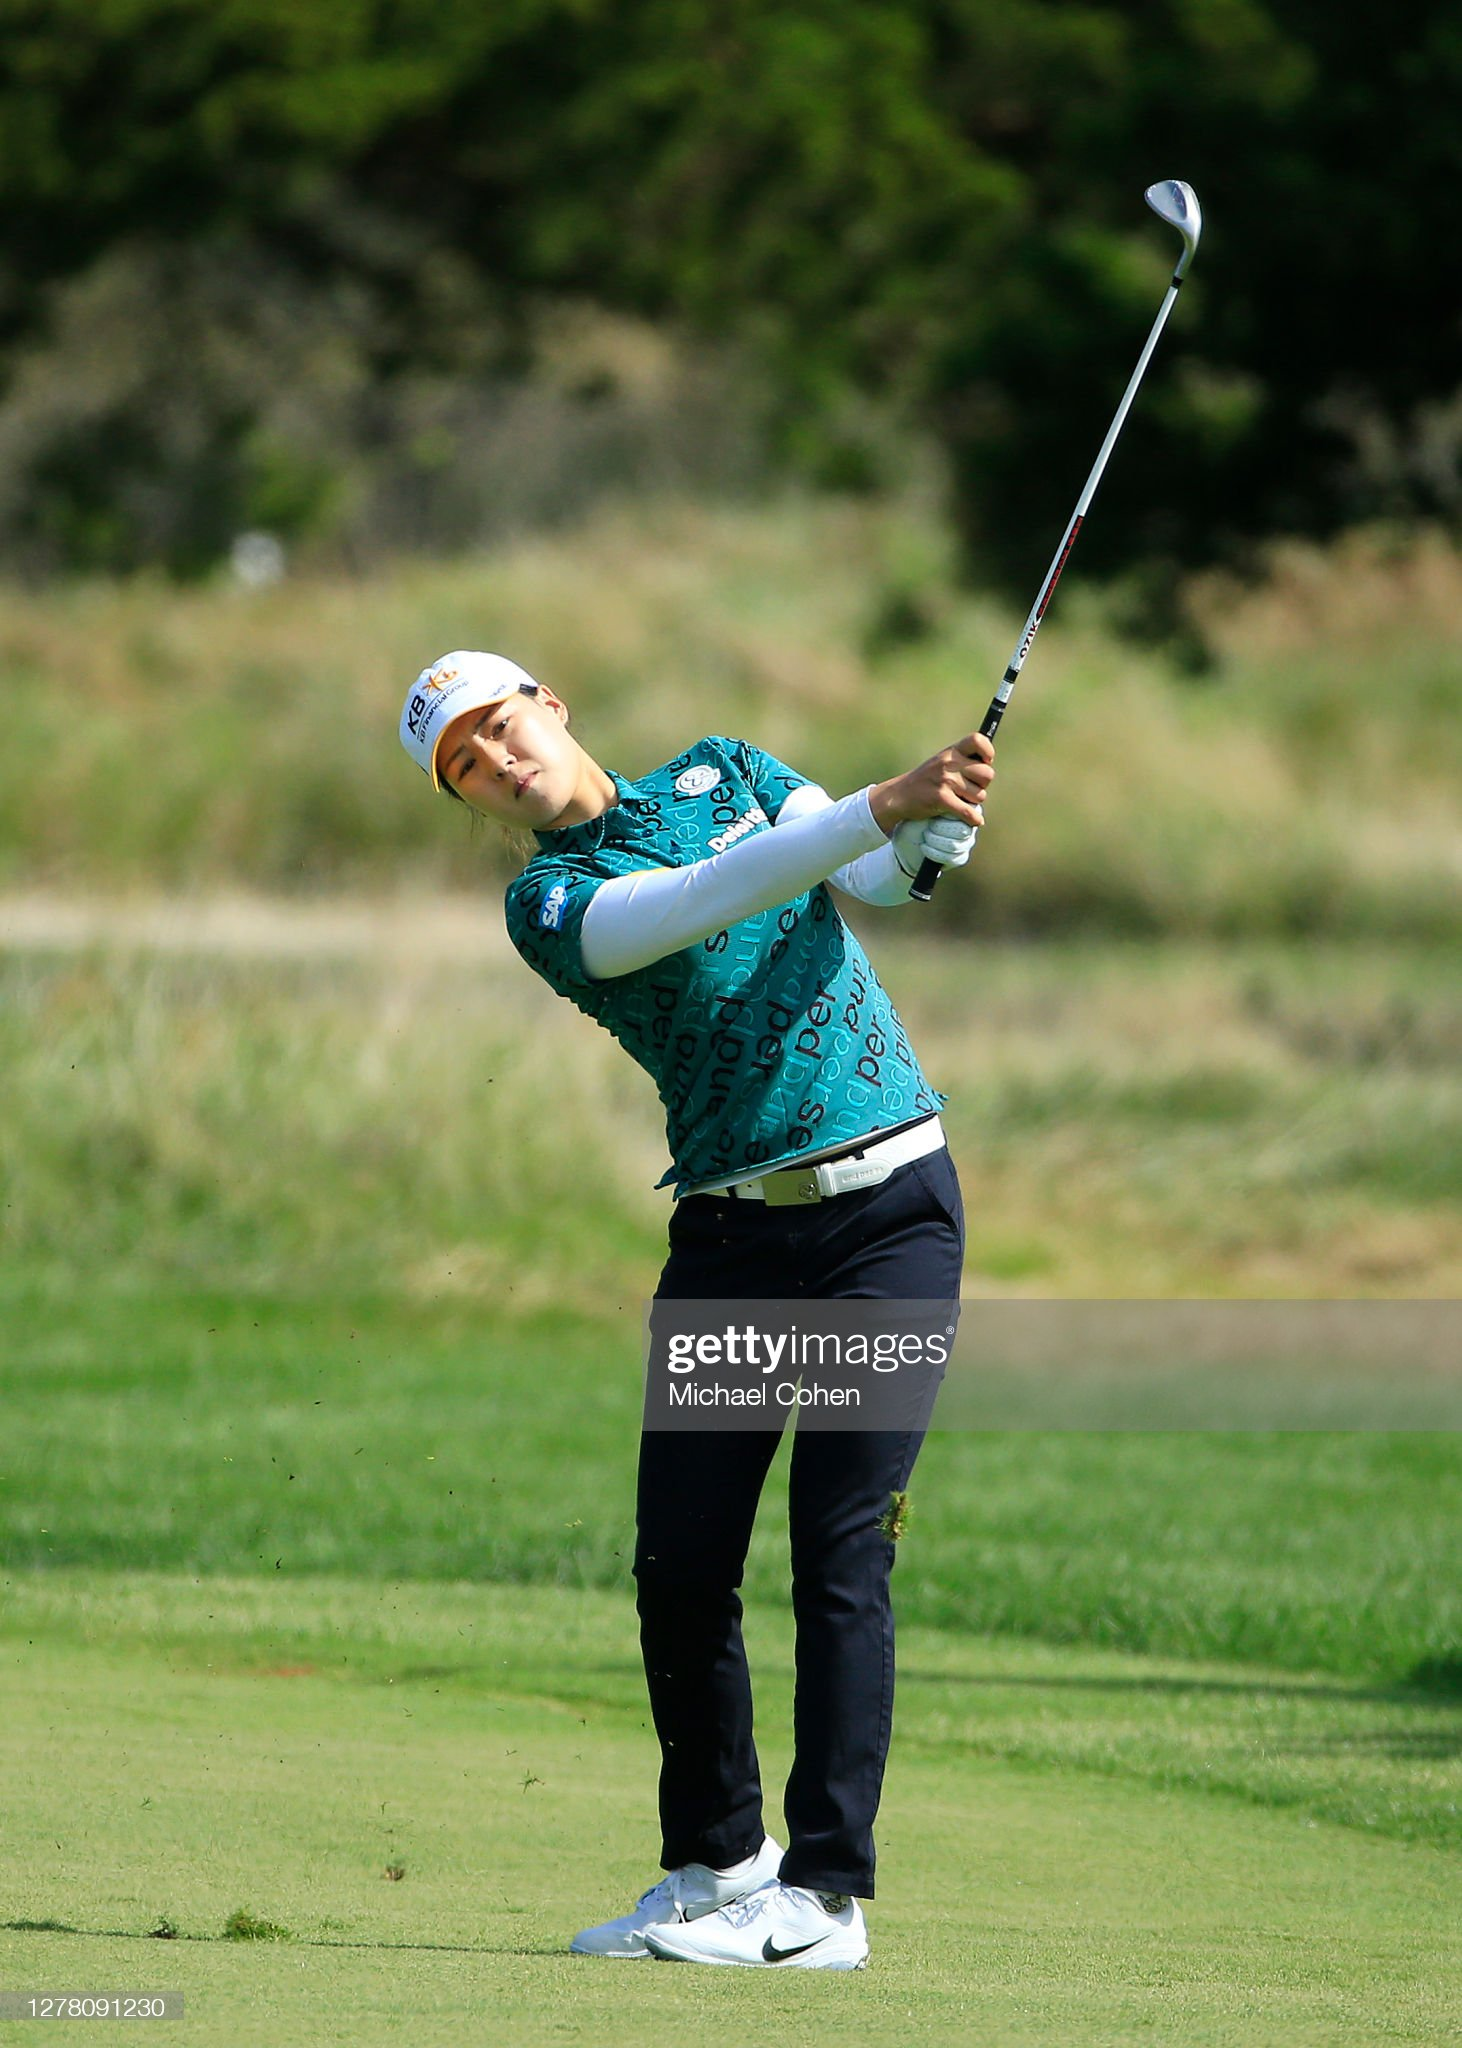 https://media.gettyimages.com/photos/in-gee-chun-of-korea-hits-her-third-shot-on-the-ninth-hole-during-the-picture-id1278091230?s=2048x2048